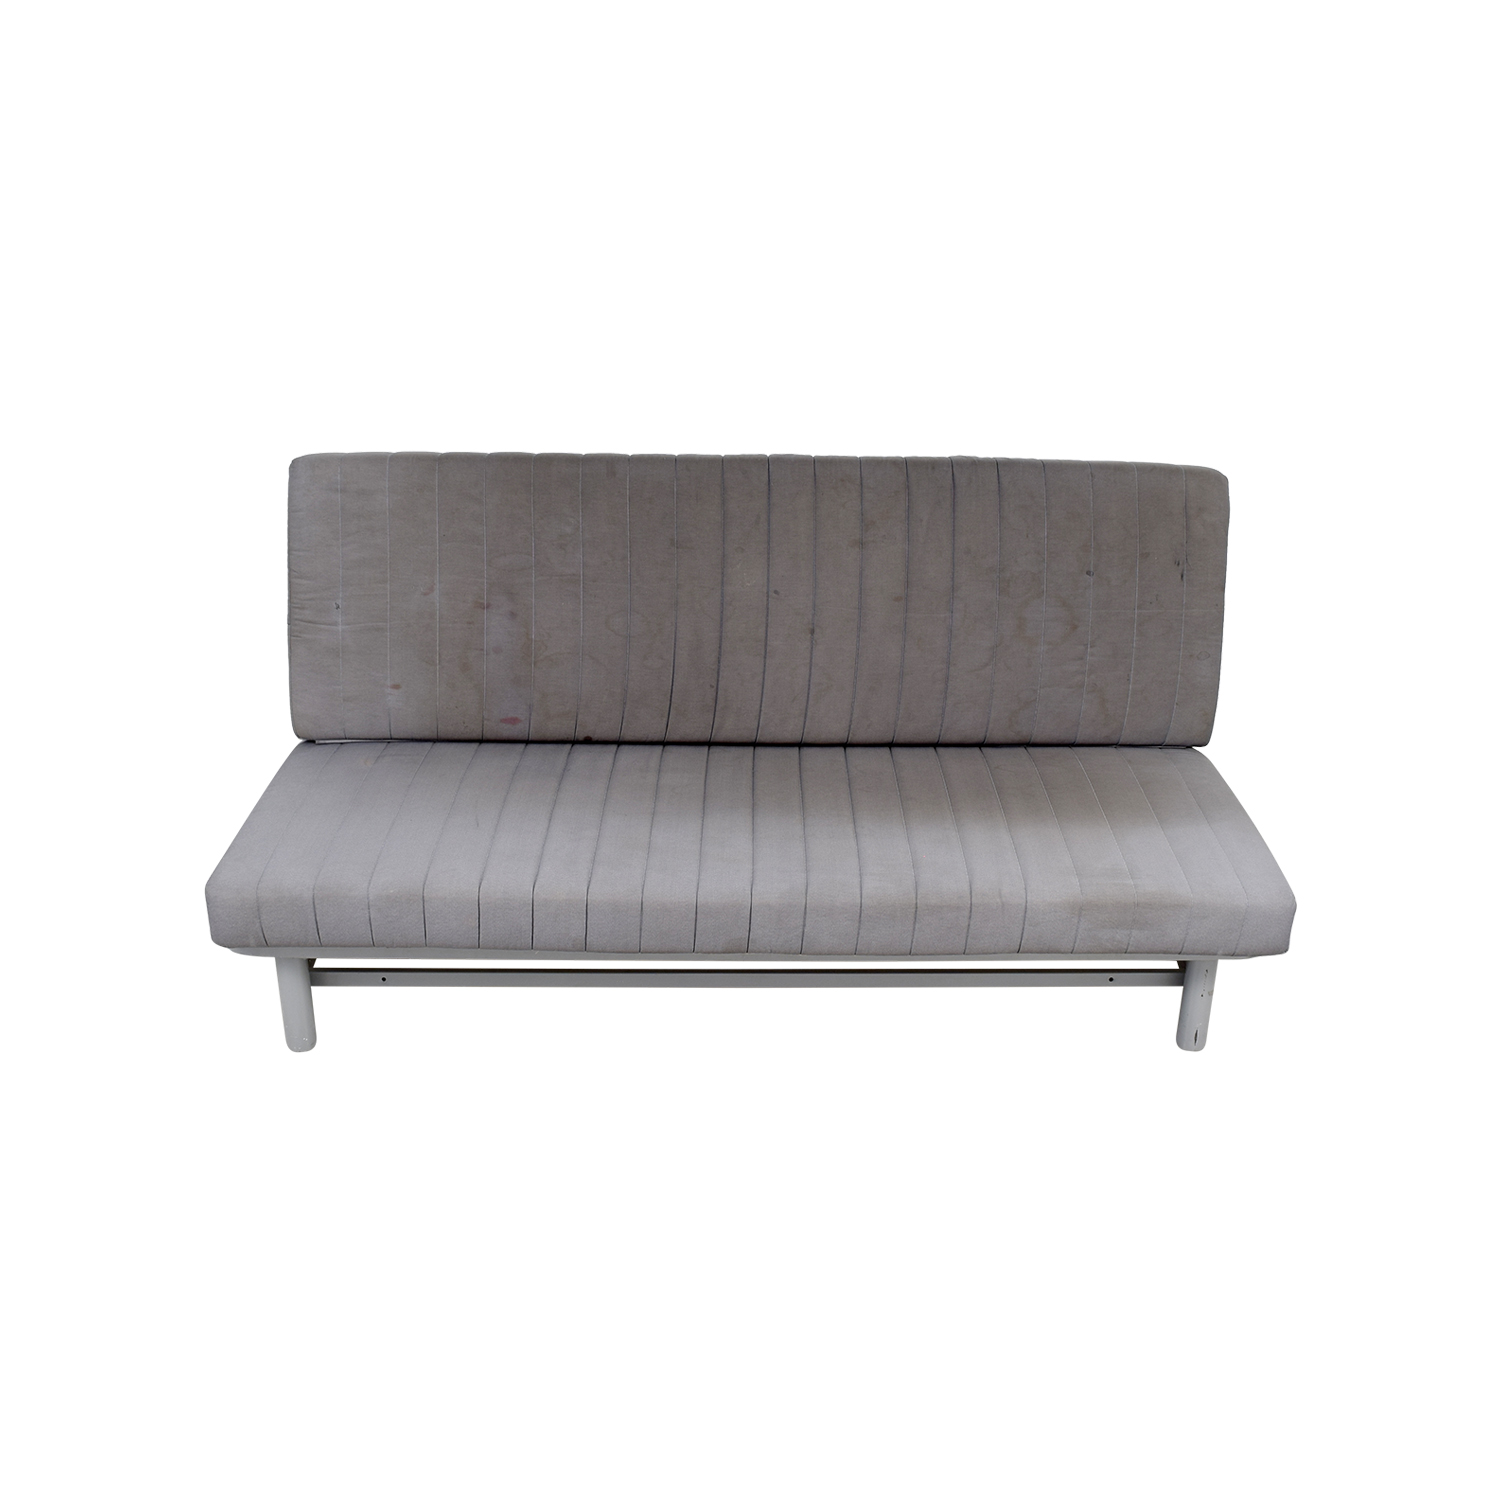 Sofa bed price junior fibre sofa bed bedore thesofa for Ikea sofa set